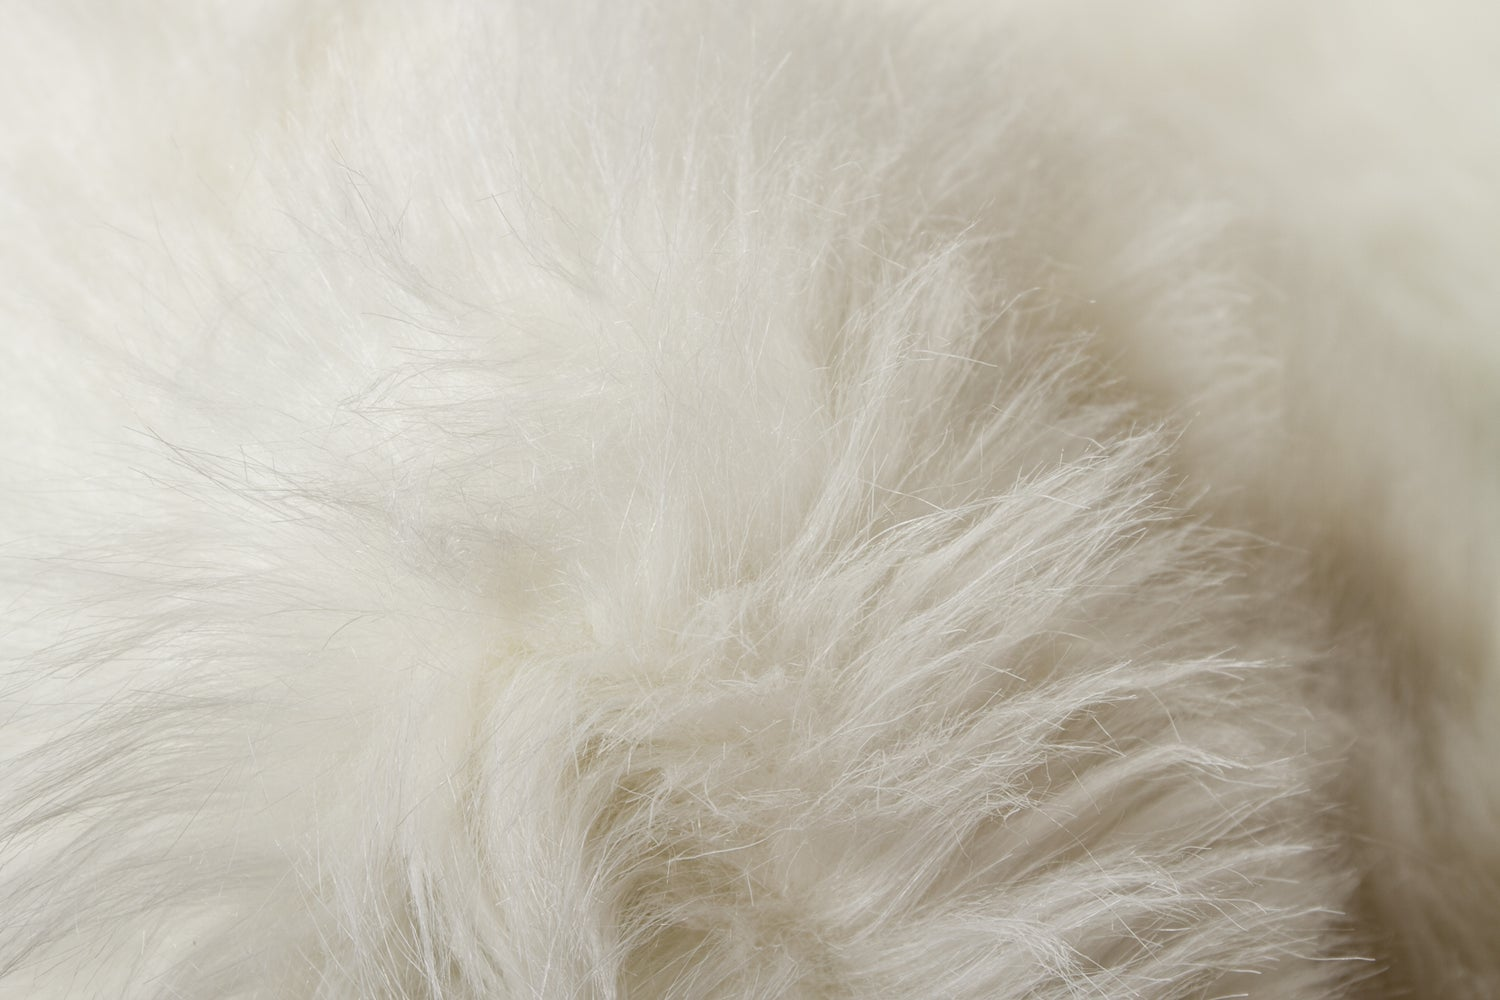 Image of 676685040978 GORDON FAUX SHEEPSKIN RUG DOUBLE  2' X 6'  OFF WHITE